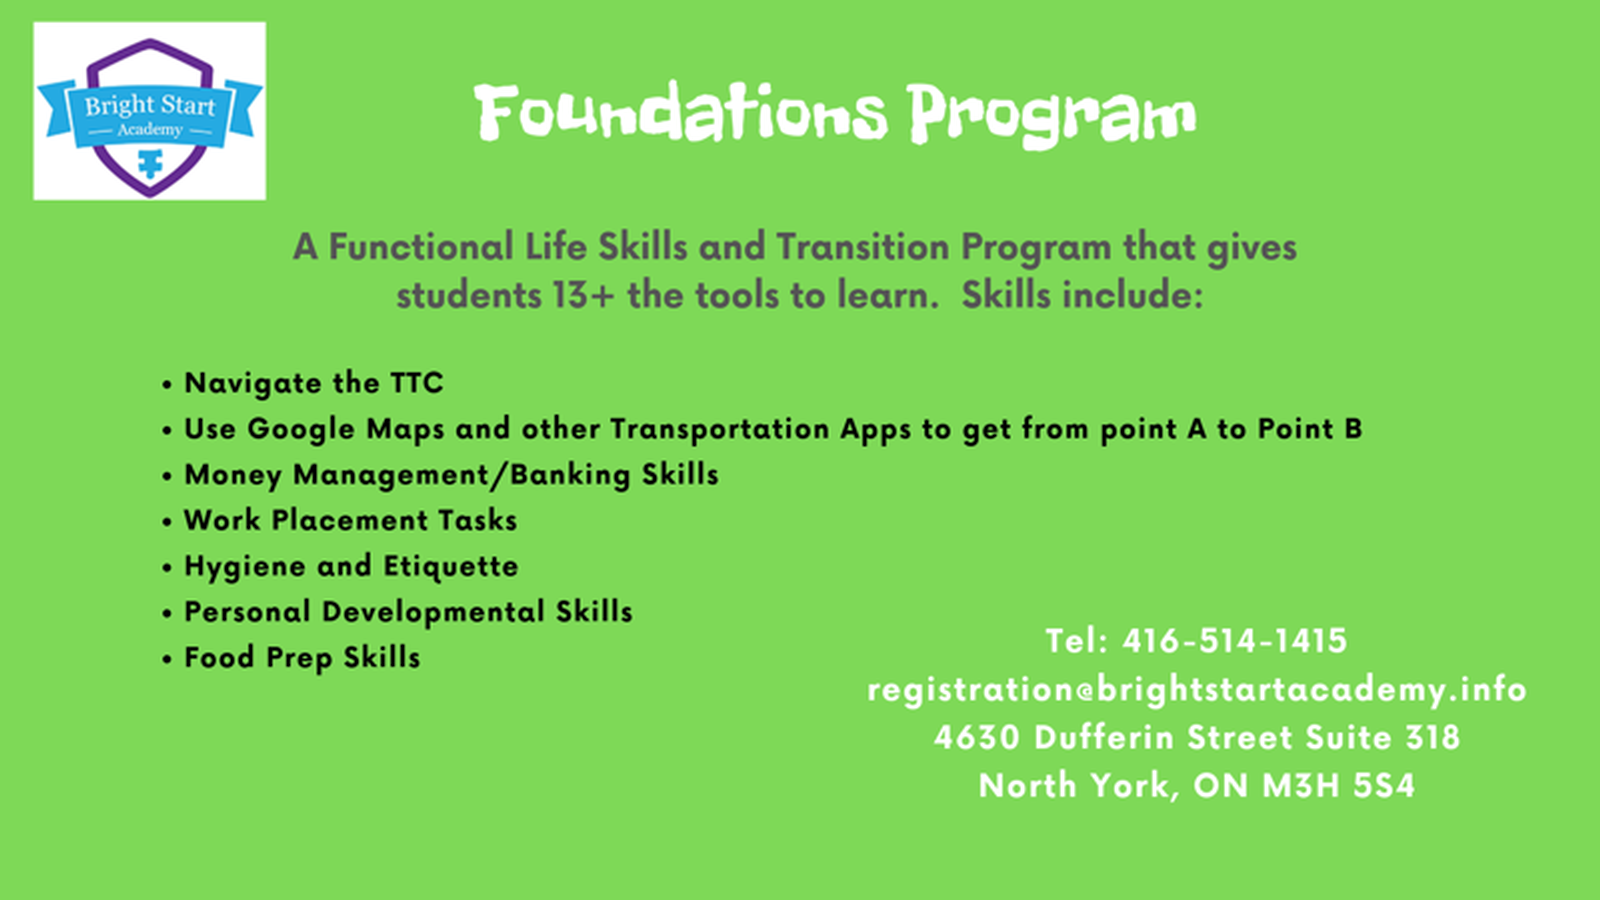 The Foundations Program